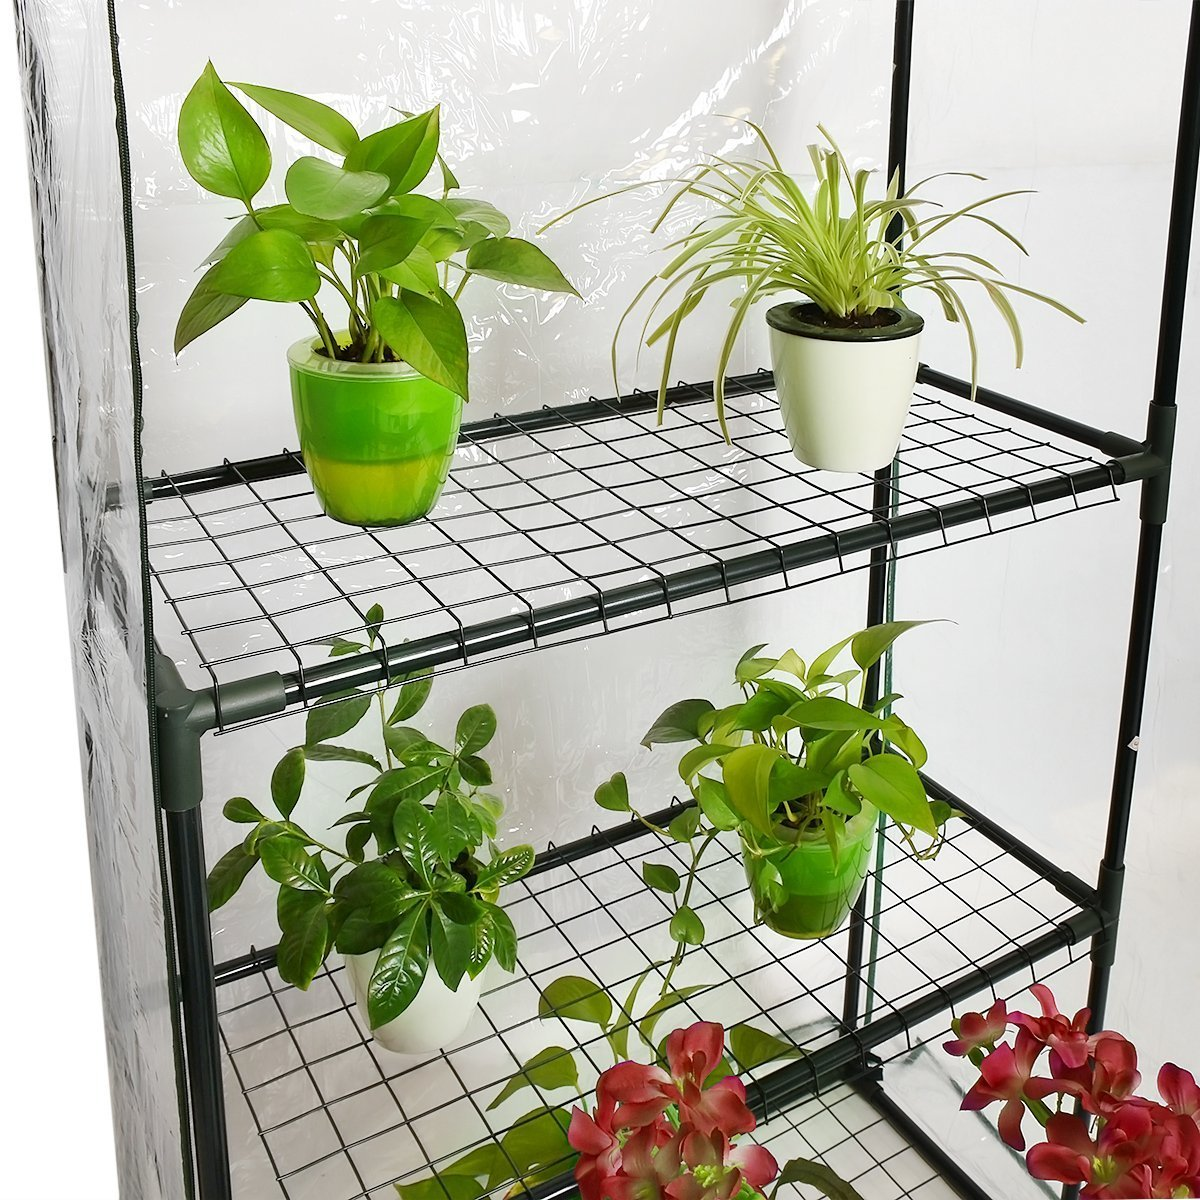 Quictent Greenhouse Mini Walk-in 3 tiers 6 shelves 102lbs Max Weight Capacity Portable Plant Garden Outdoor Green House 56''x29''x77'' by Quictent (Image #4)